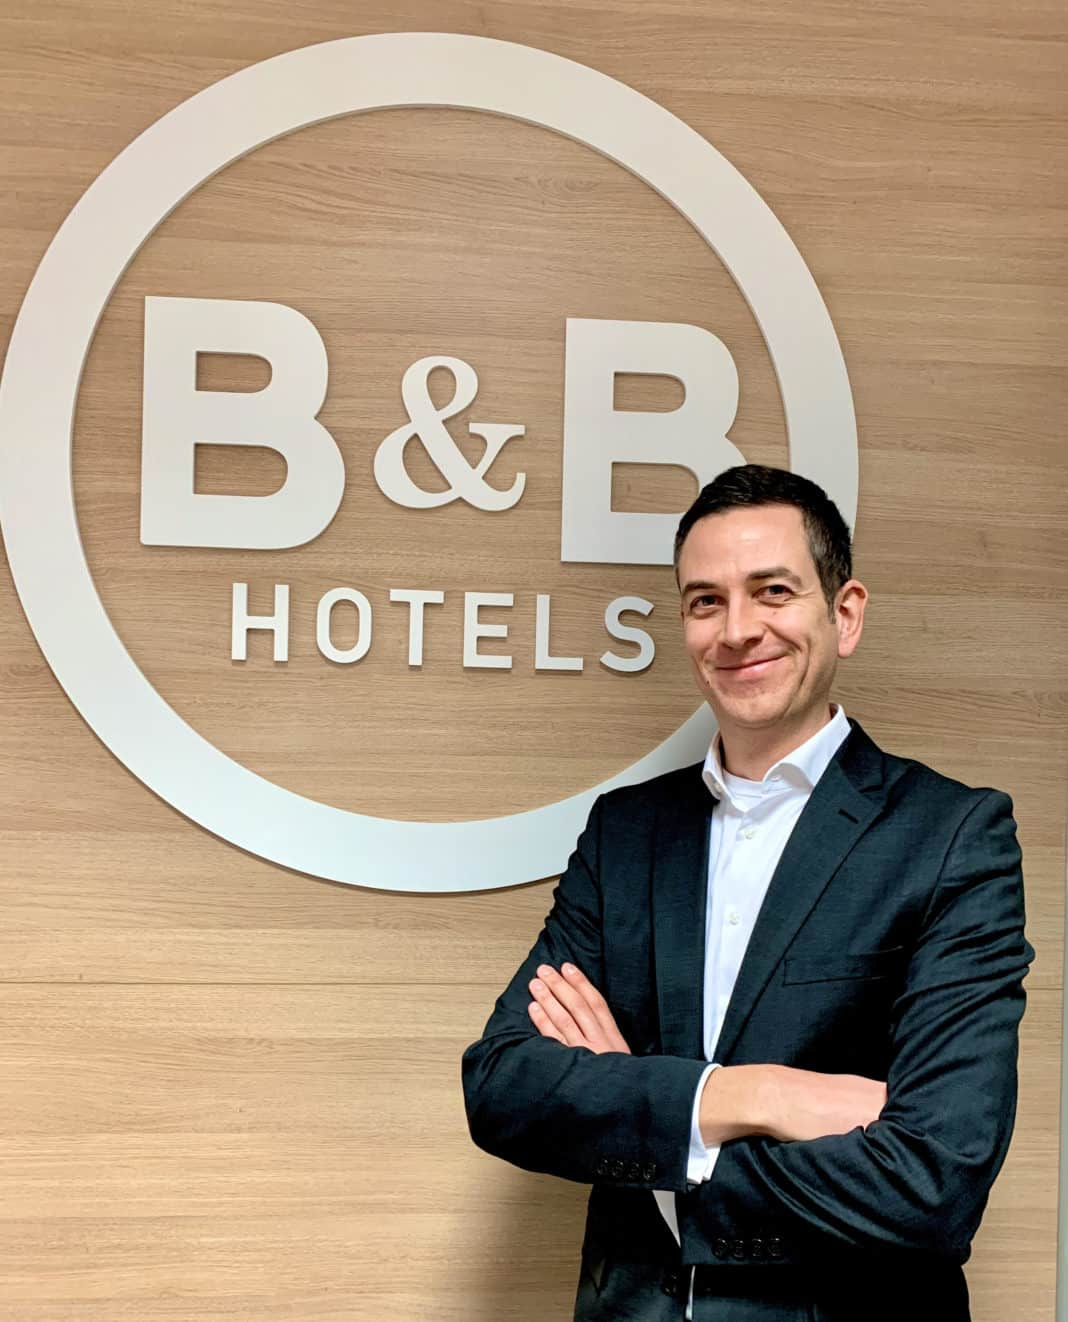 Eric Tapper neuer Key Account Manager bei B&B HOTELS